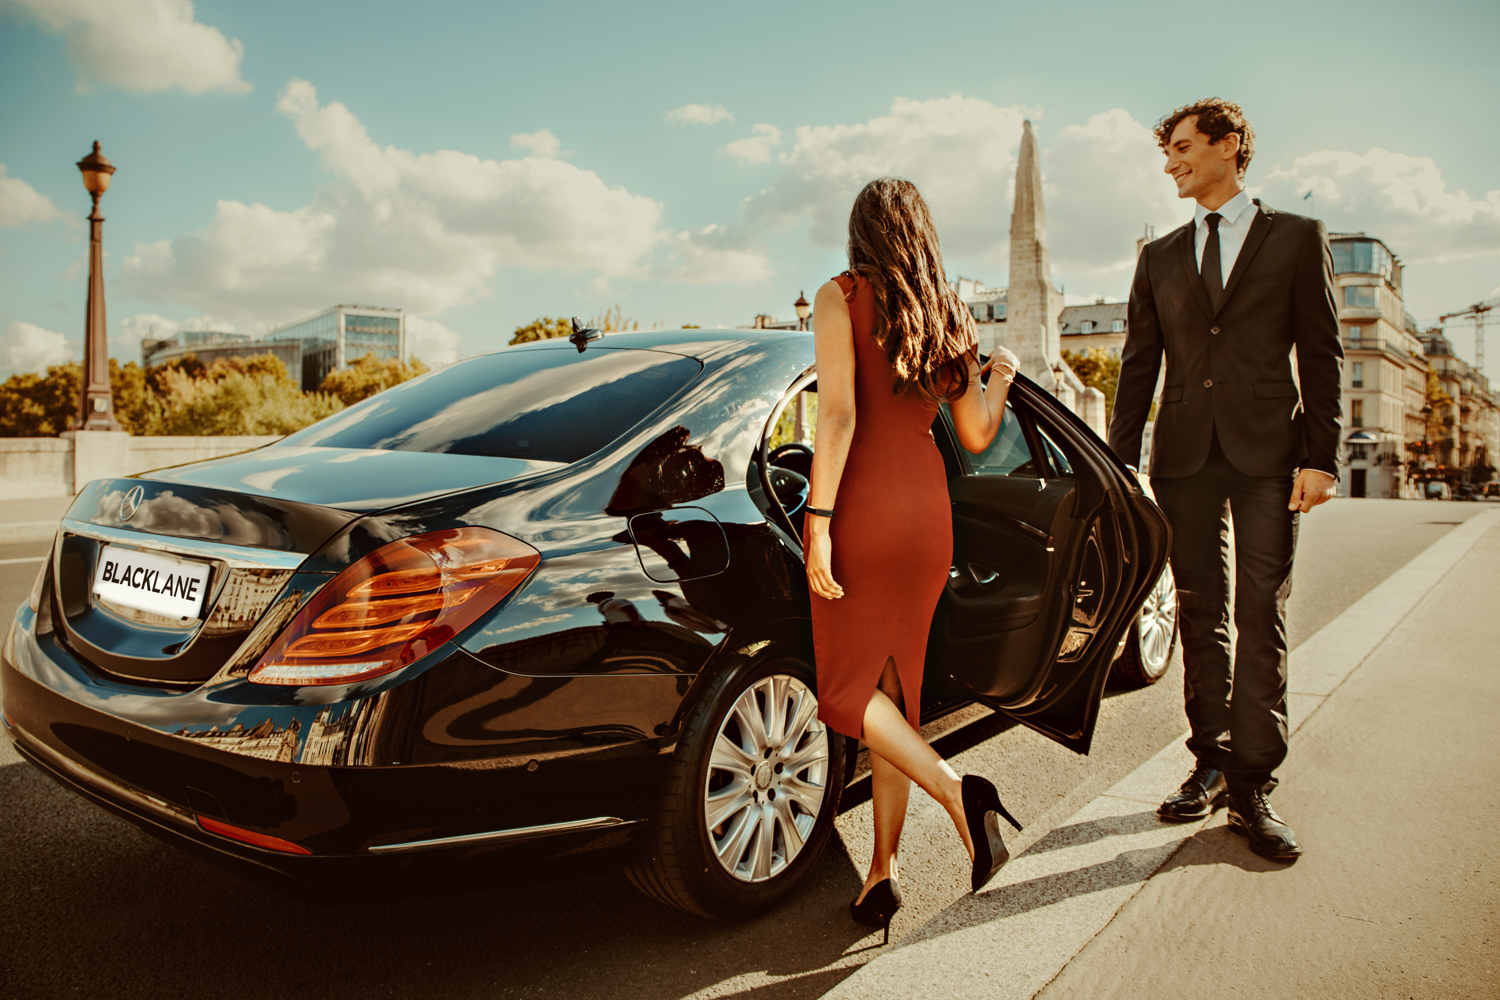 All Photography for this article provided by the Blacklane Marketing Team.